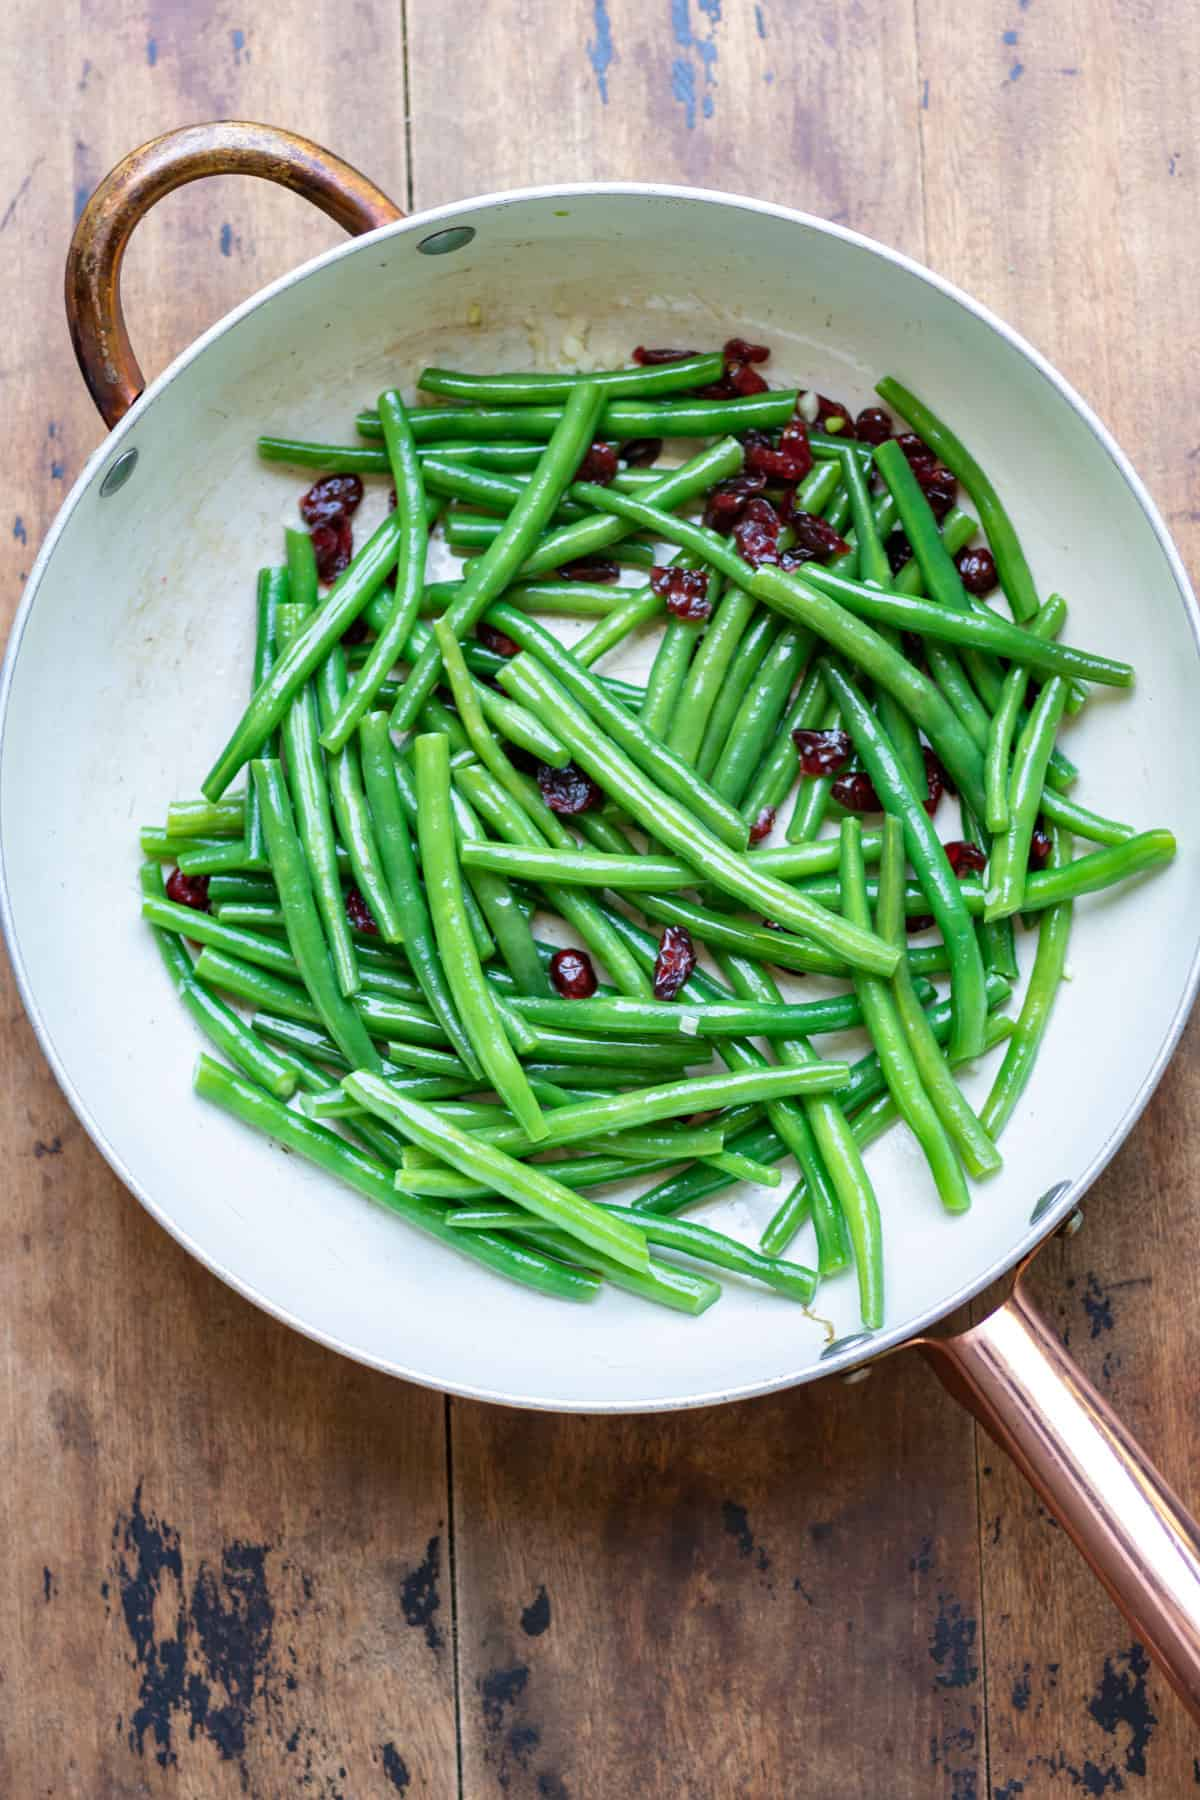 Sauteeing the cooked green beans in a pan.